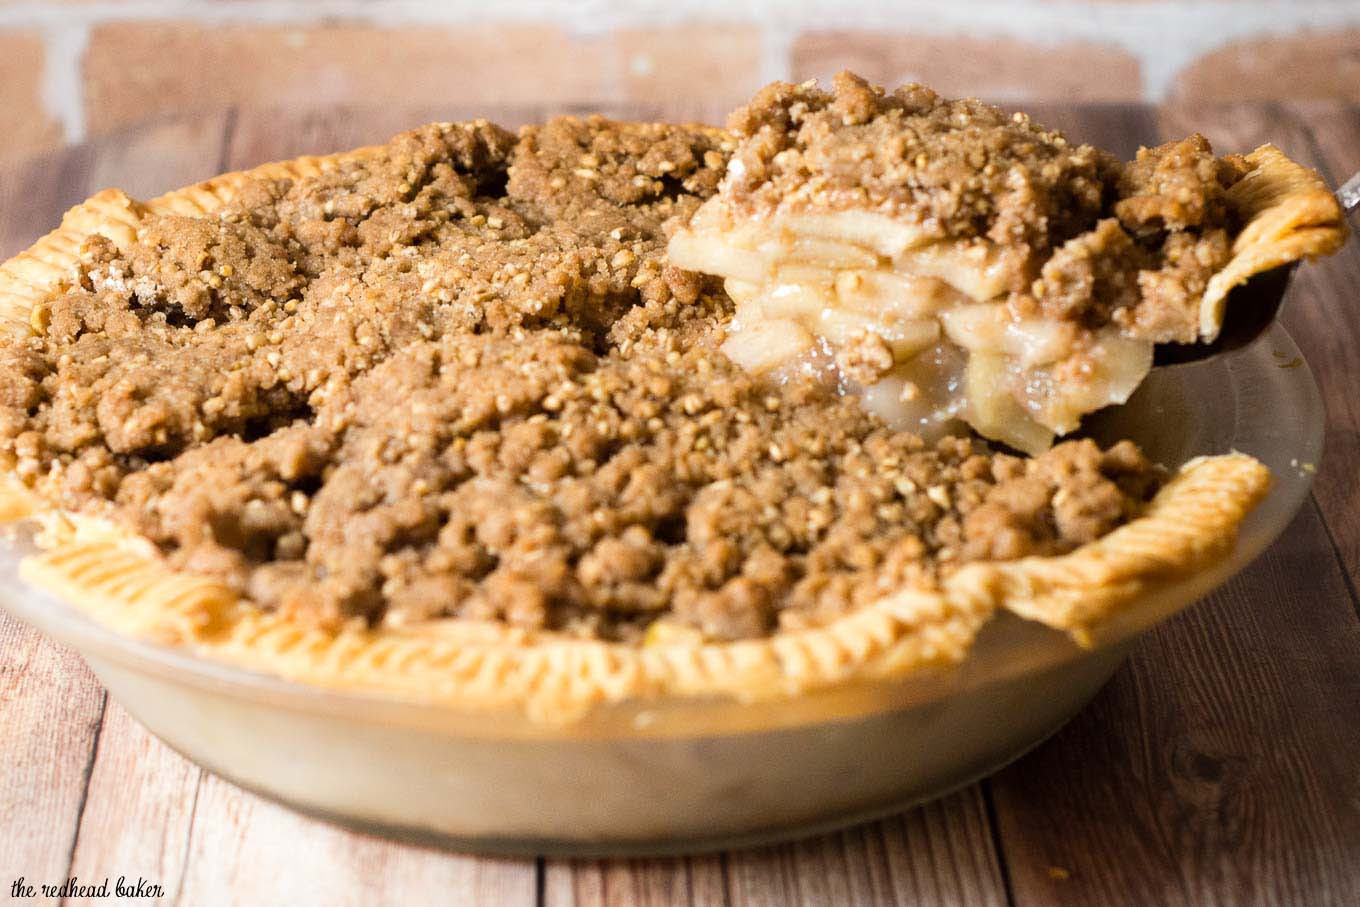 Apple Pie Topping  Apple Pie with Oat Crumb Topping by The Redhead Baker